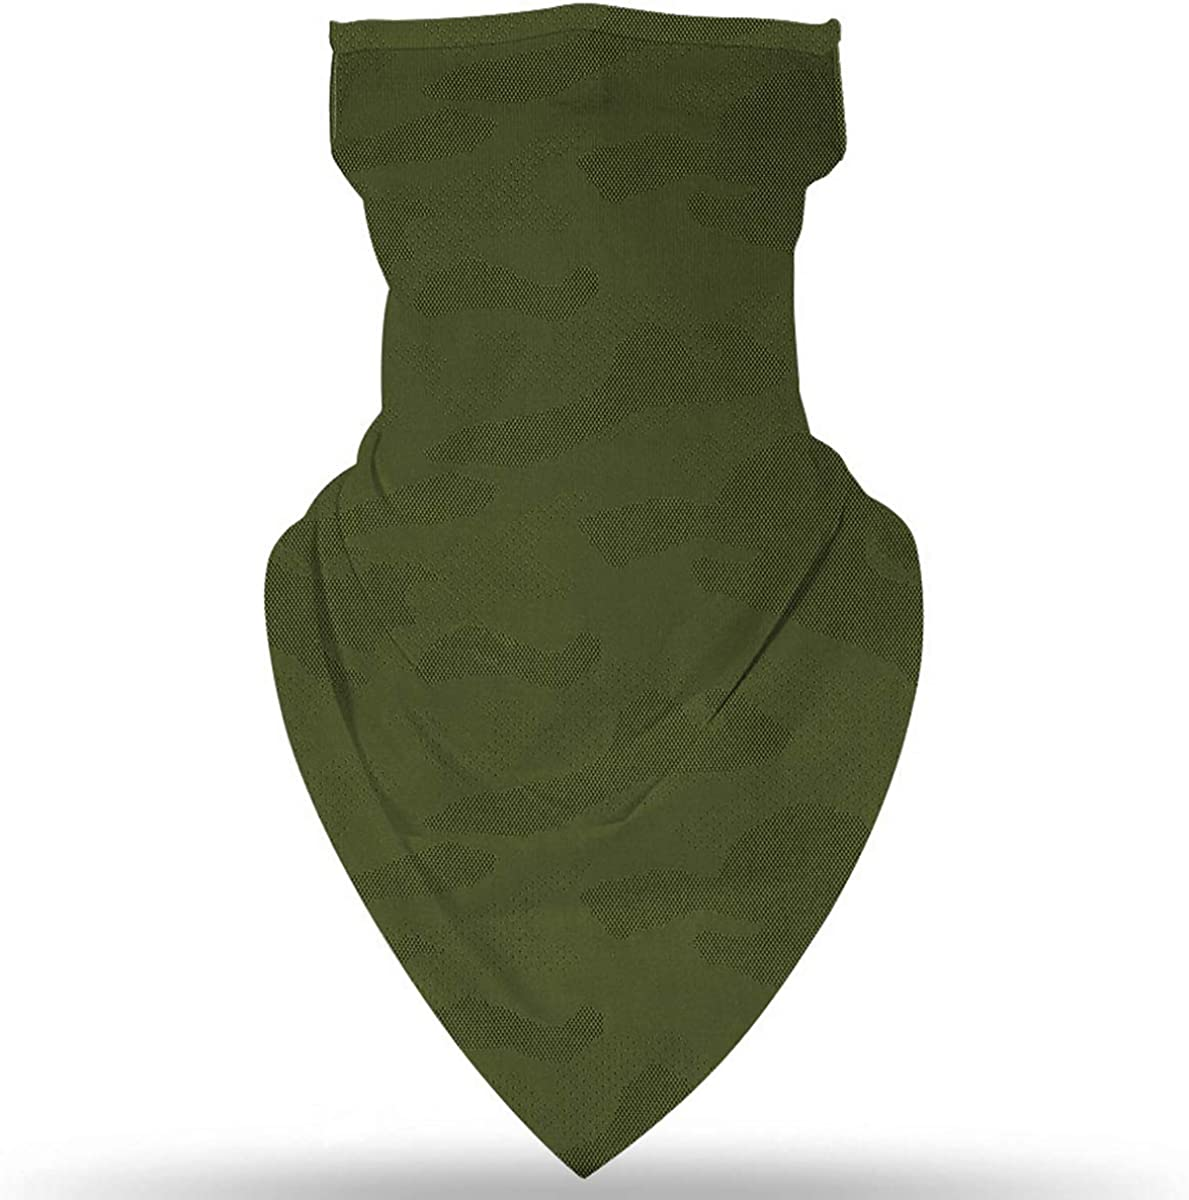 Neck Gaiter Ear Loops Bandanas for Women Men UV Wind Outdoor Cycling Hanging Balaclava face mask Ear-Green